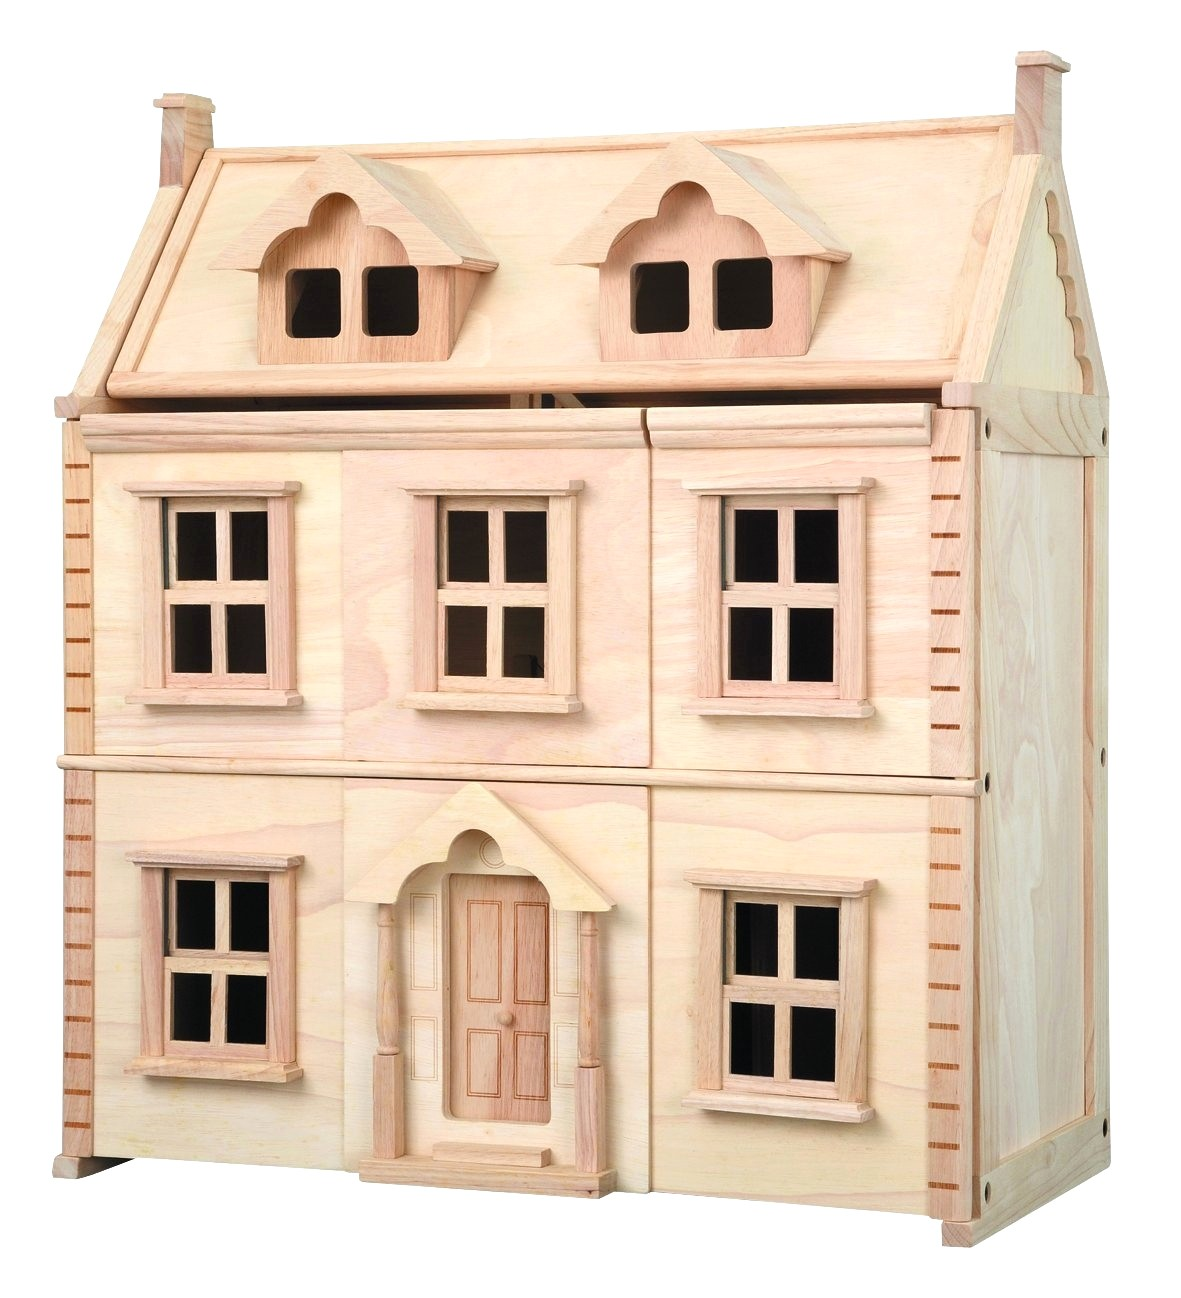 free victorian doll house plans luxury victorian doll house plans elegant 30 victorian dollhouse plans free